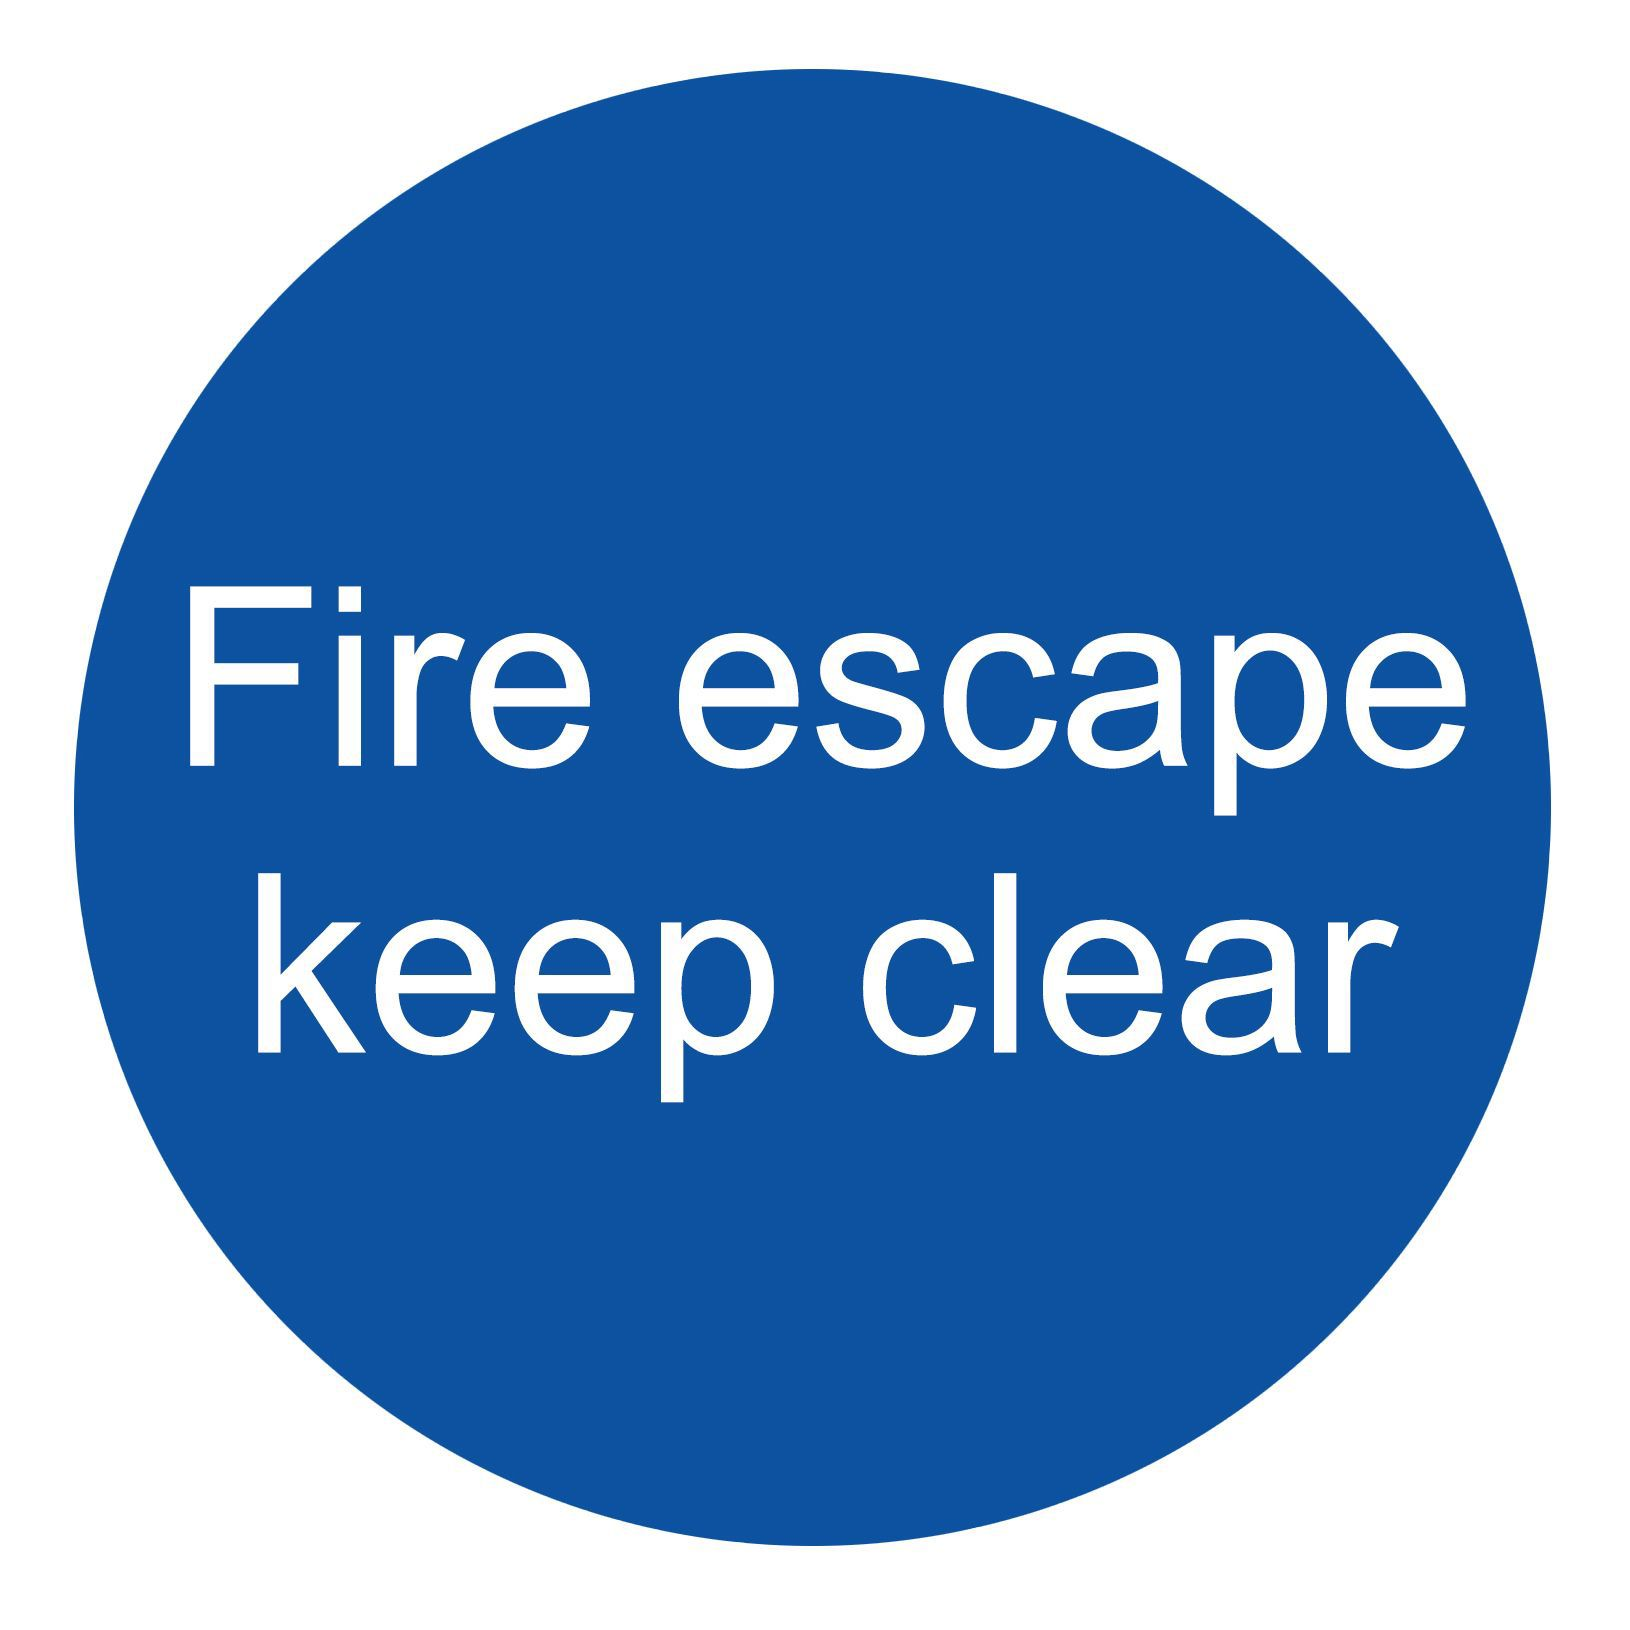 The House Nameplate Company Pvc Self Adhesive Fire Escape Keep Clear Sign (h)100mm (w)100mm